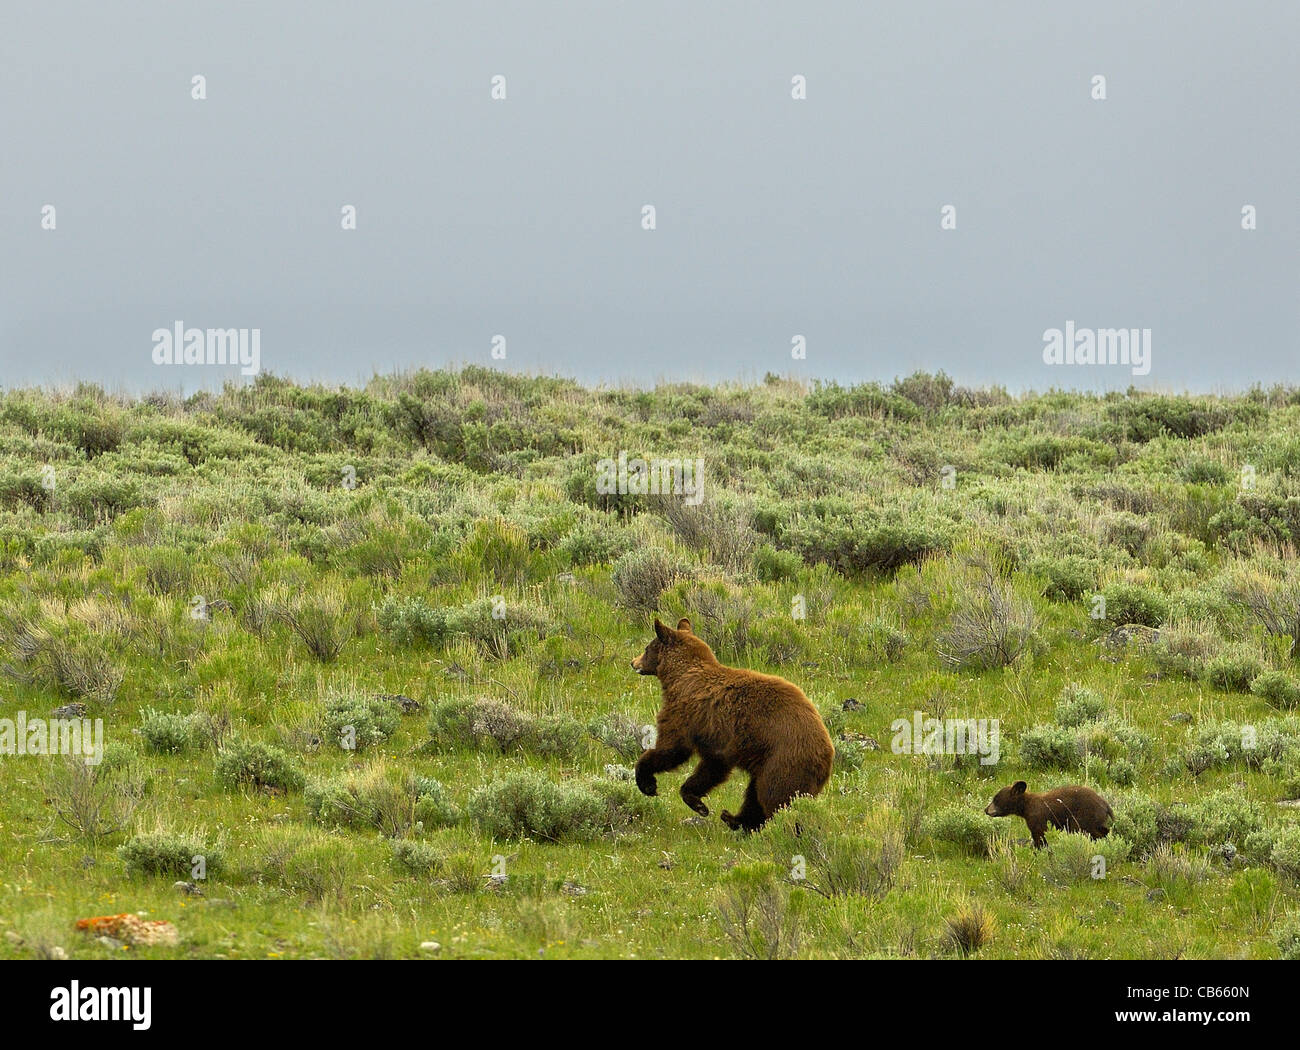 Cinnamon-colored Black Bear Mother running with her cub. Stock Photo